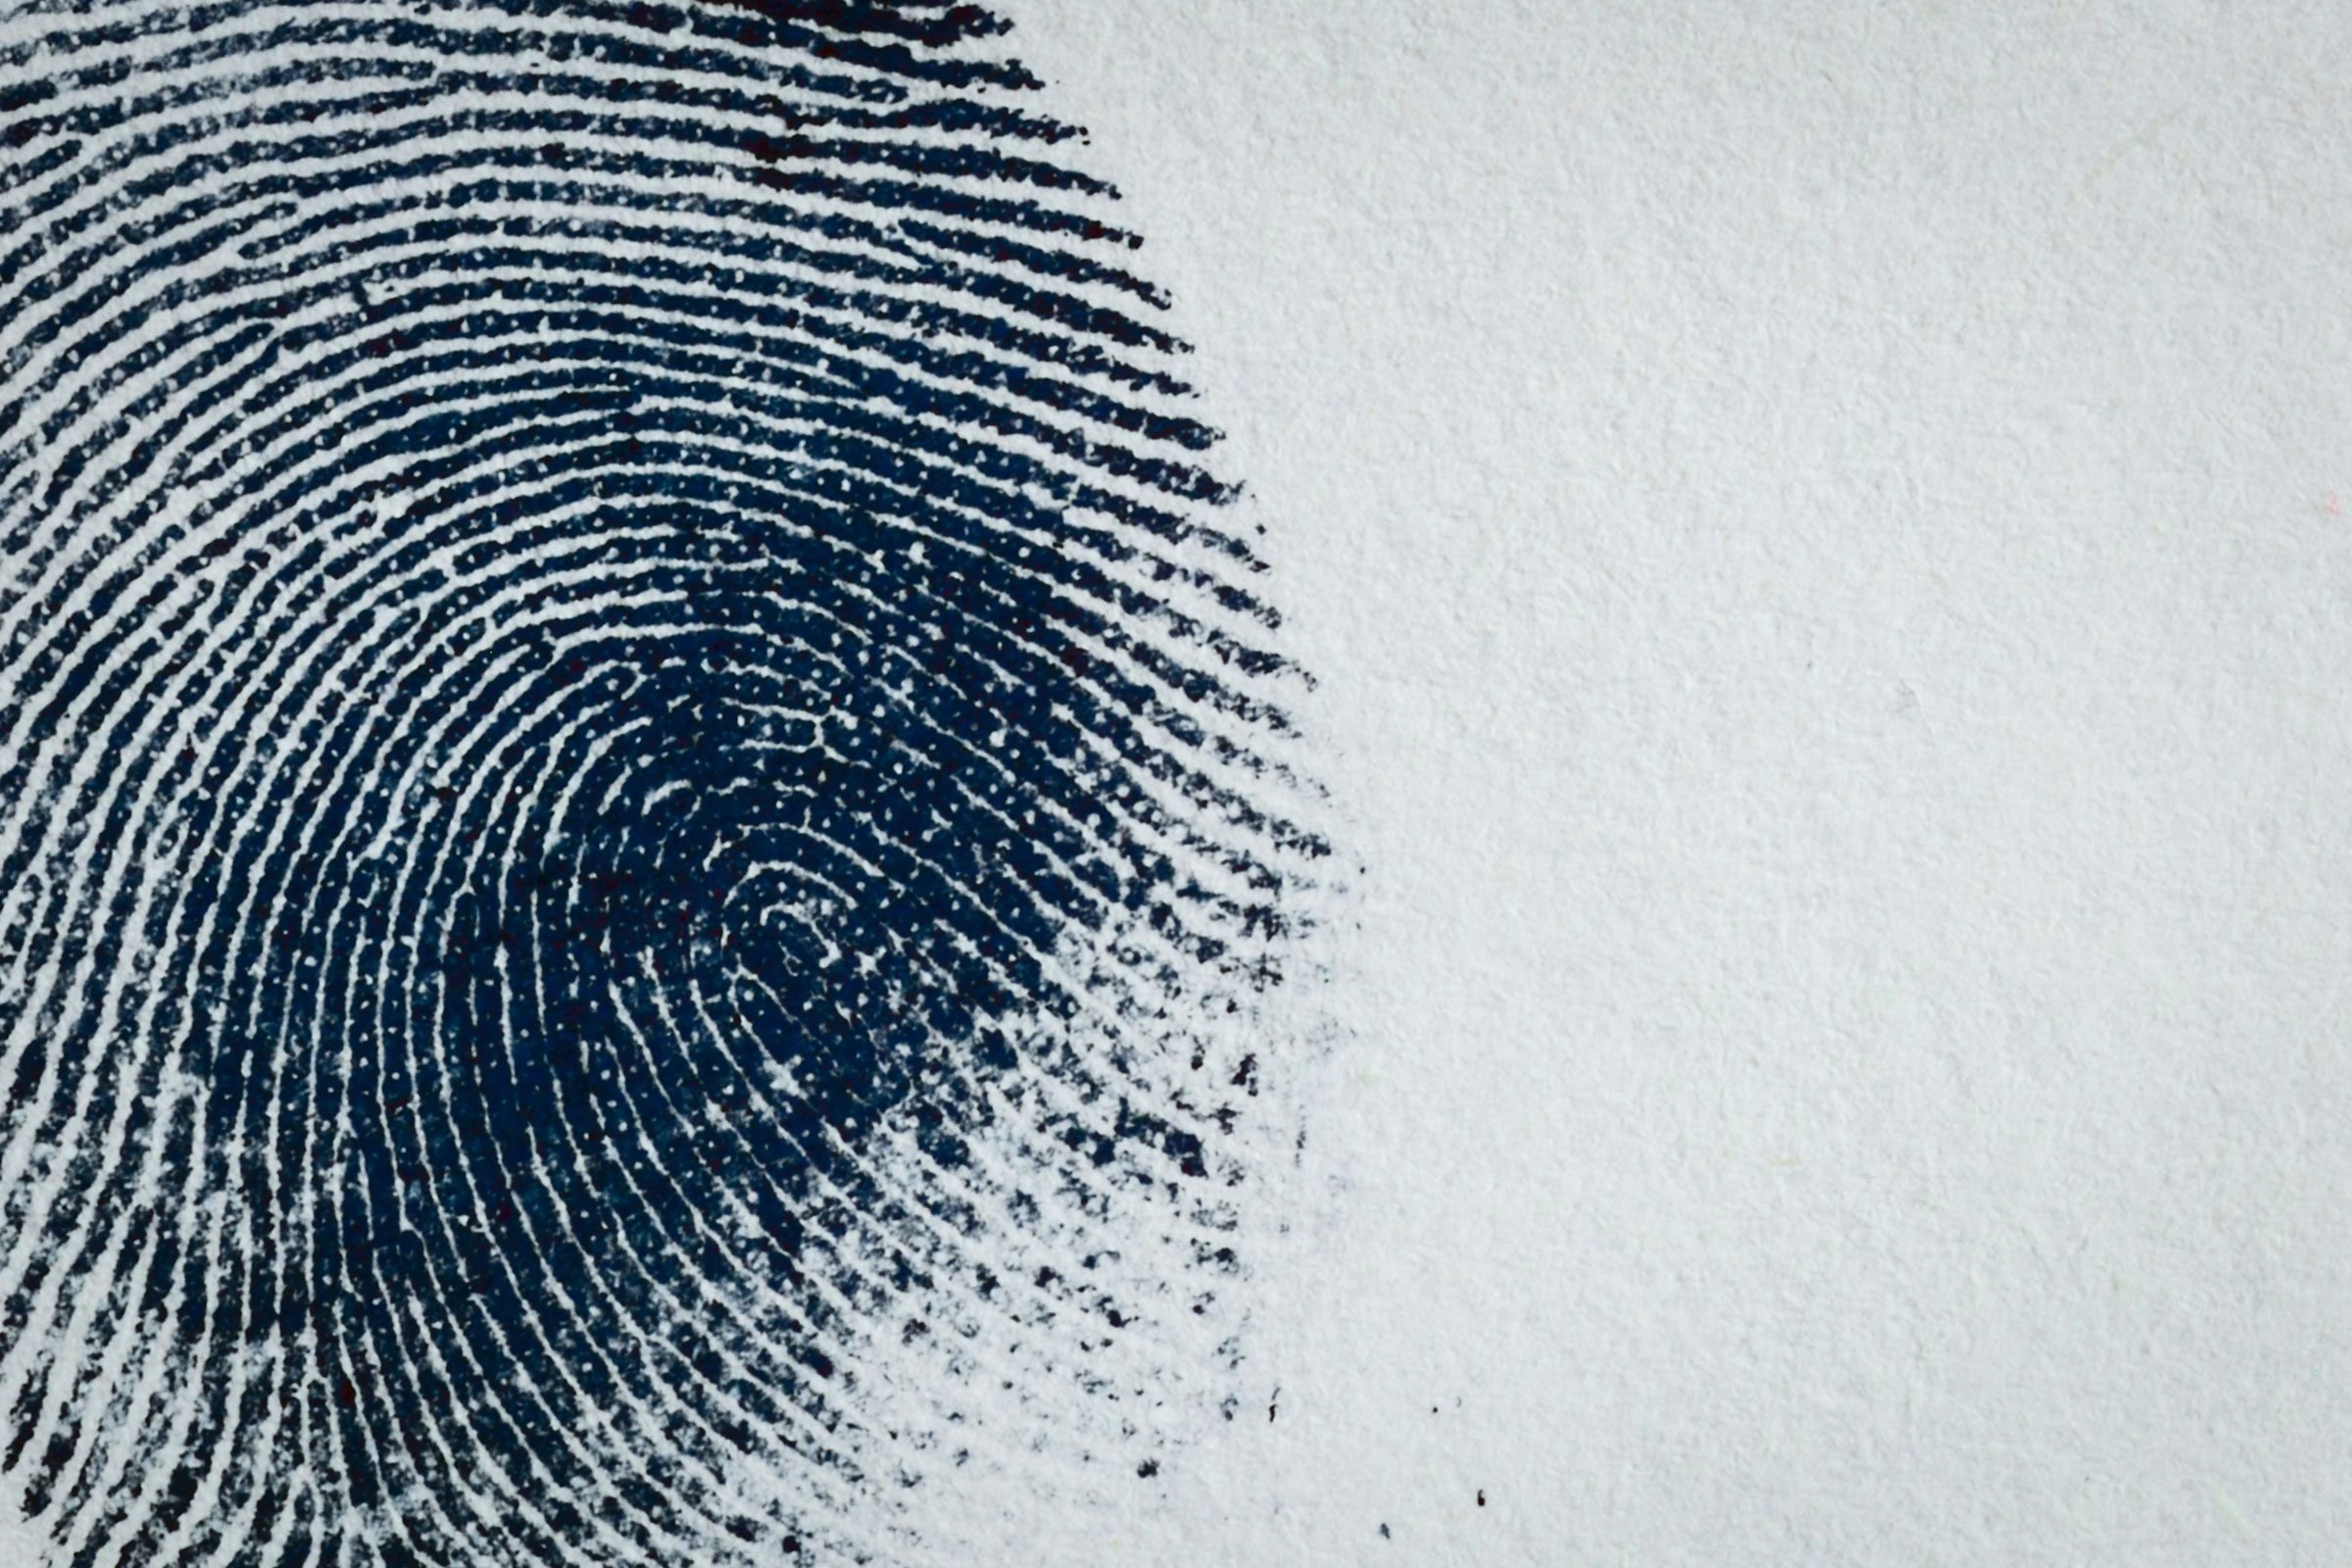 Integrated automated fingerprint identification system